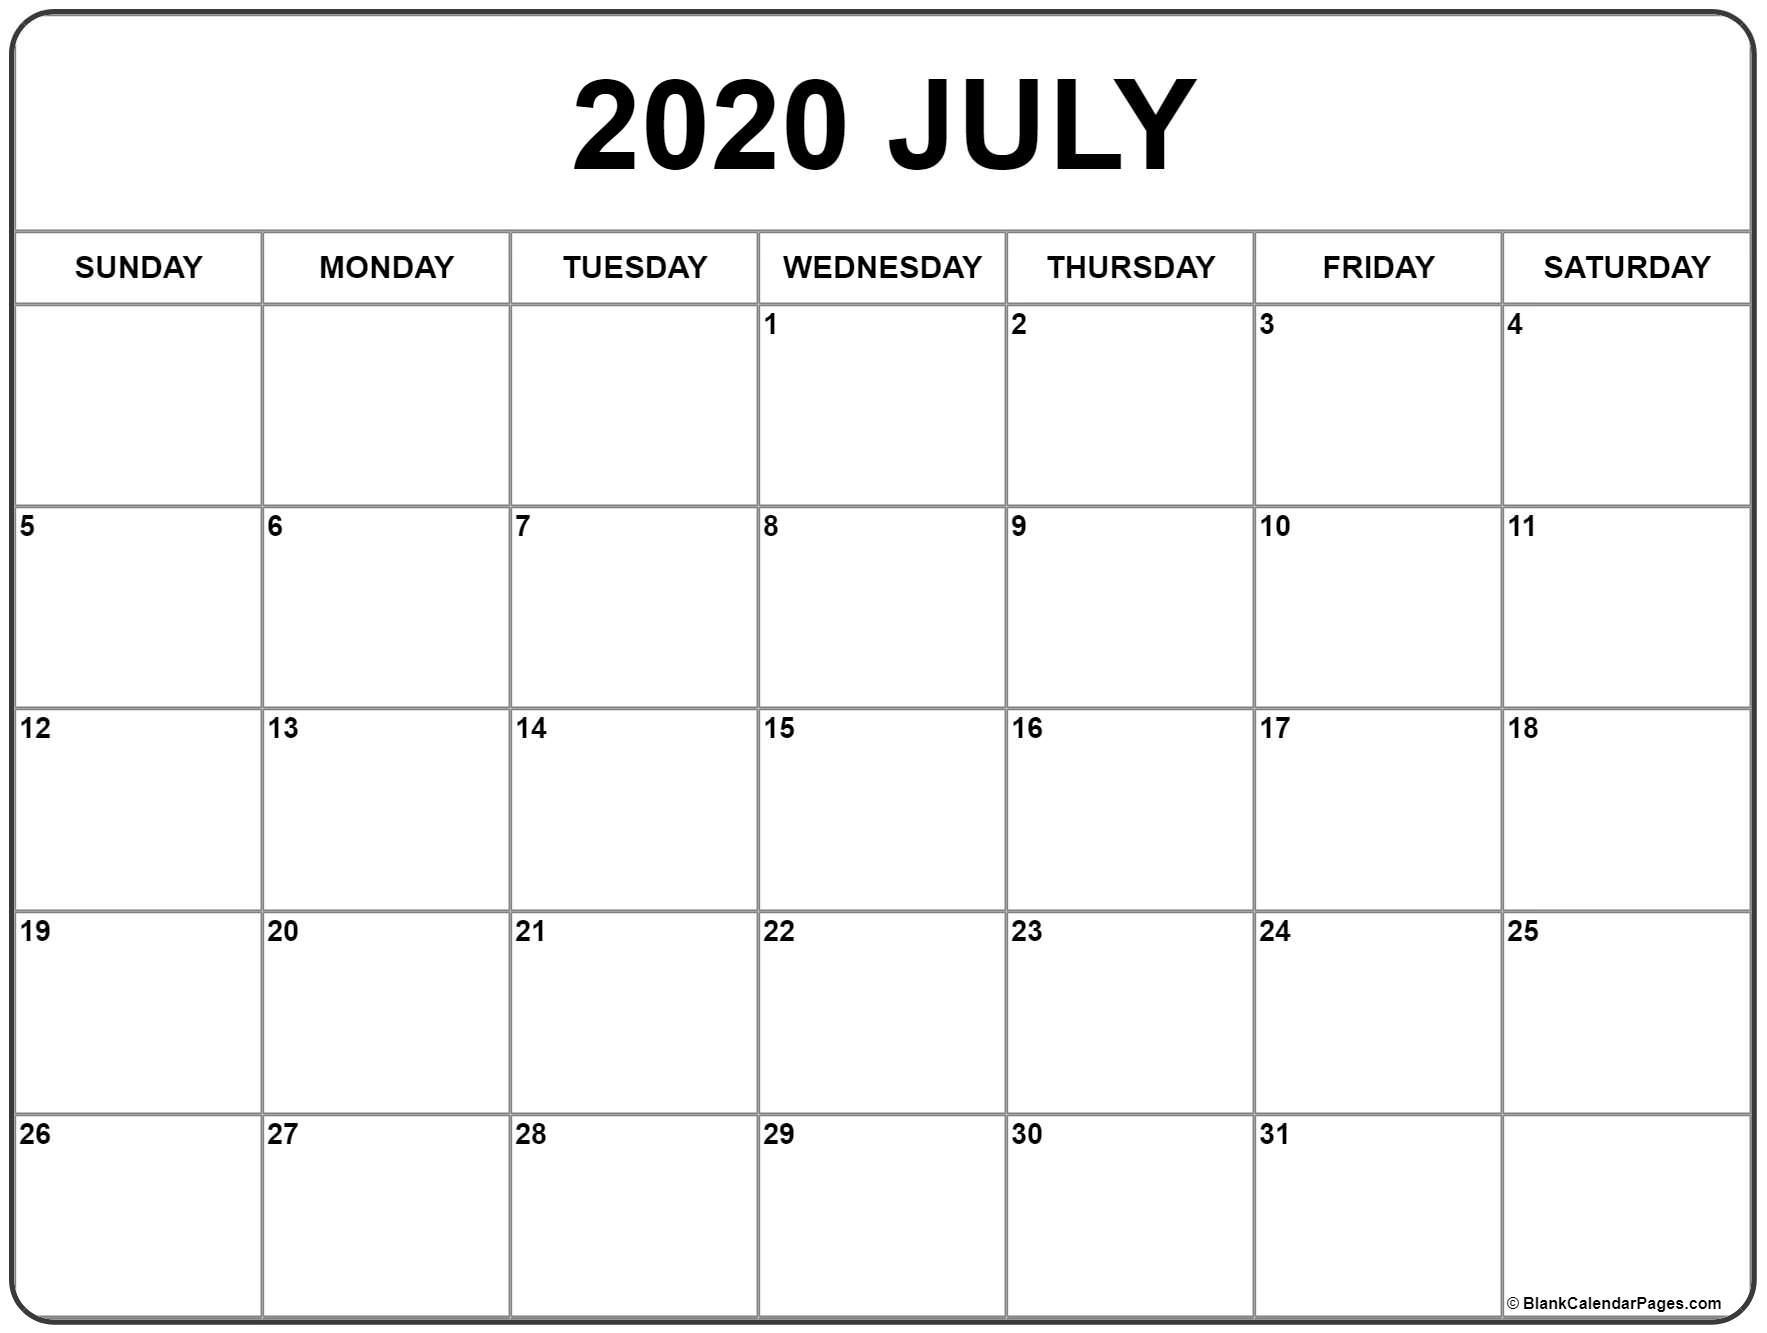 July 2020 Calendar | Free Printable Monthly Calendars in 2020 Free Printable Calendars Without Downloading Monthly